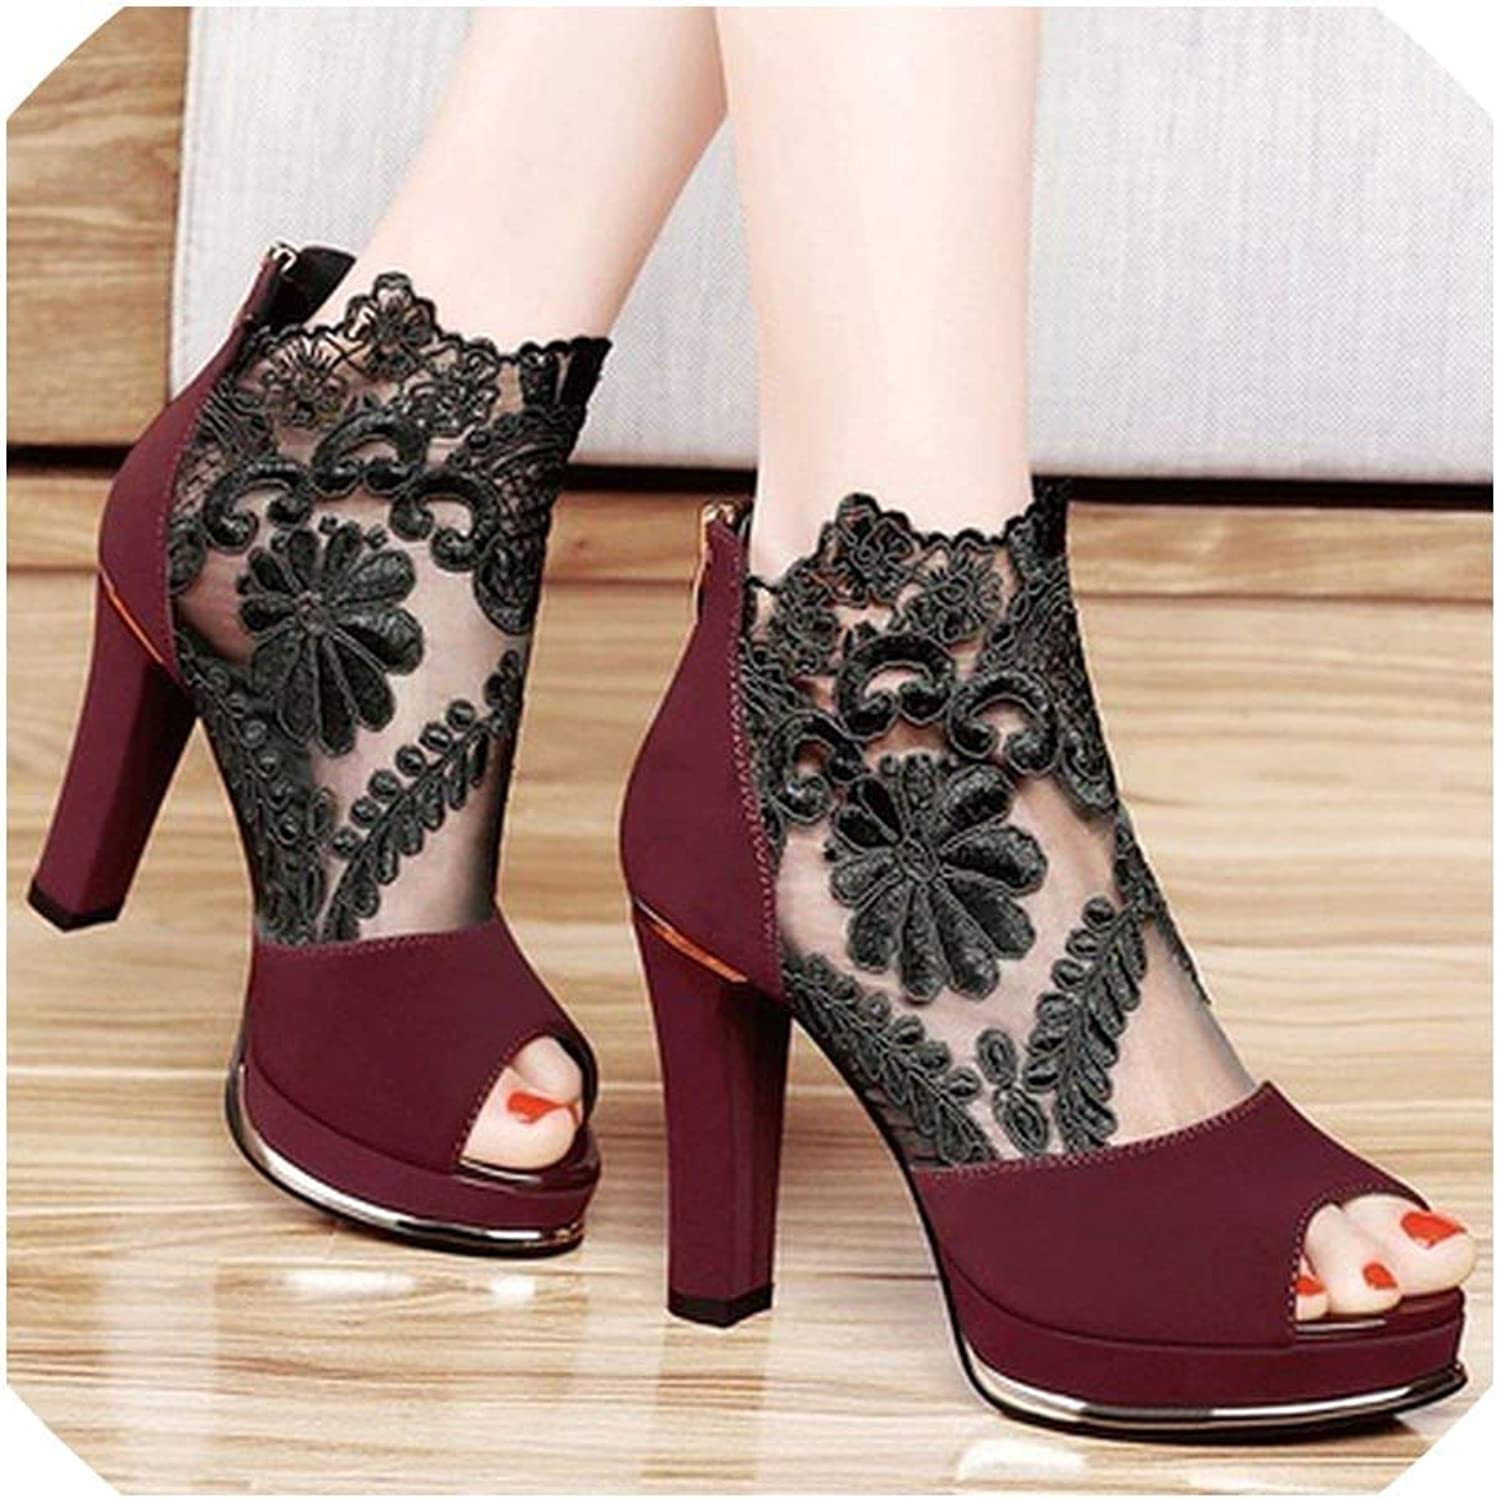 Sexy Gauze Thick Fish Head Sandals with A Sole High Heels shoes Ankle Boots Women shoes Sandals